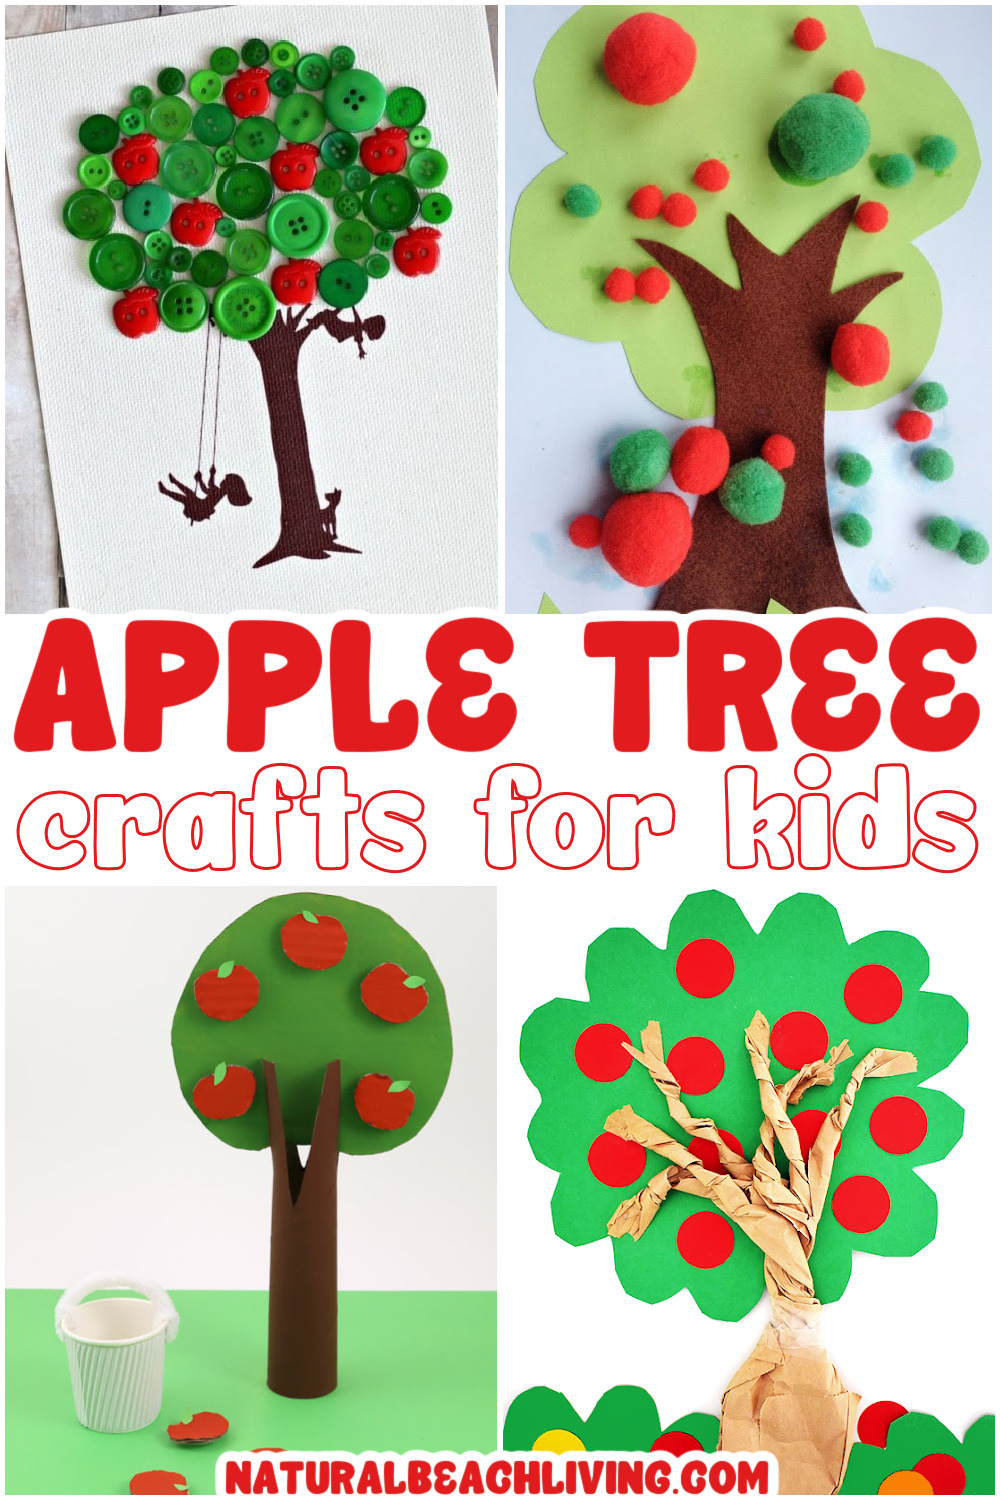 16 Apple Tree Crafts for Kids